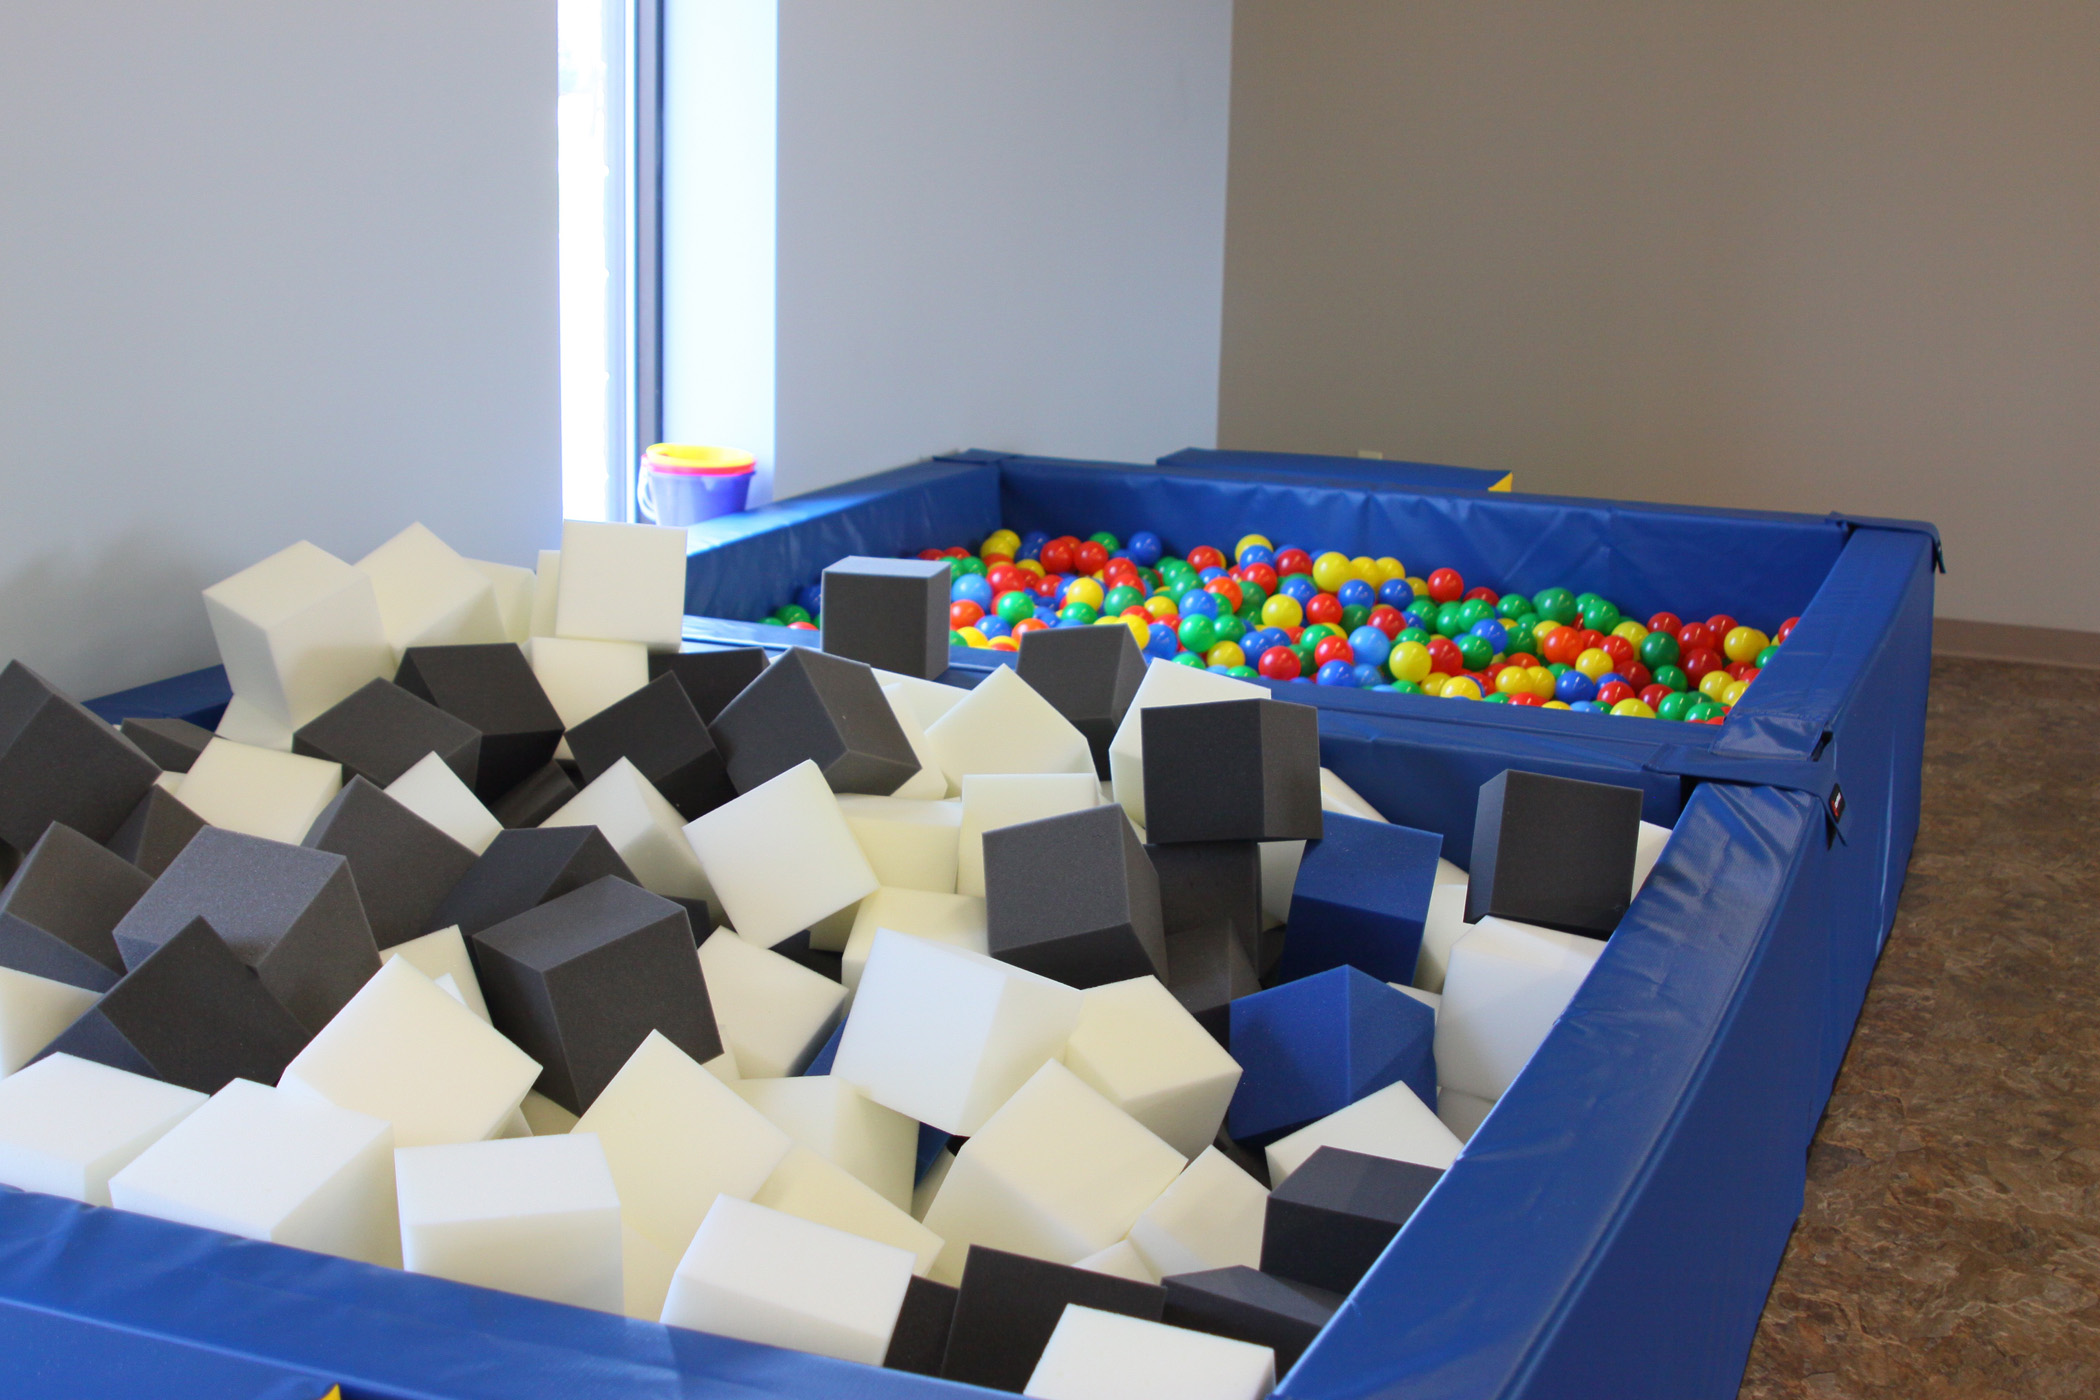 Ball Pit and Foam Pit